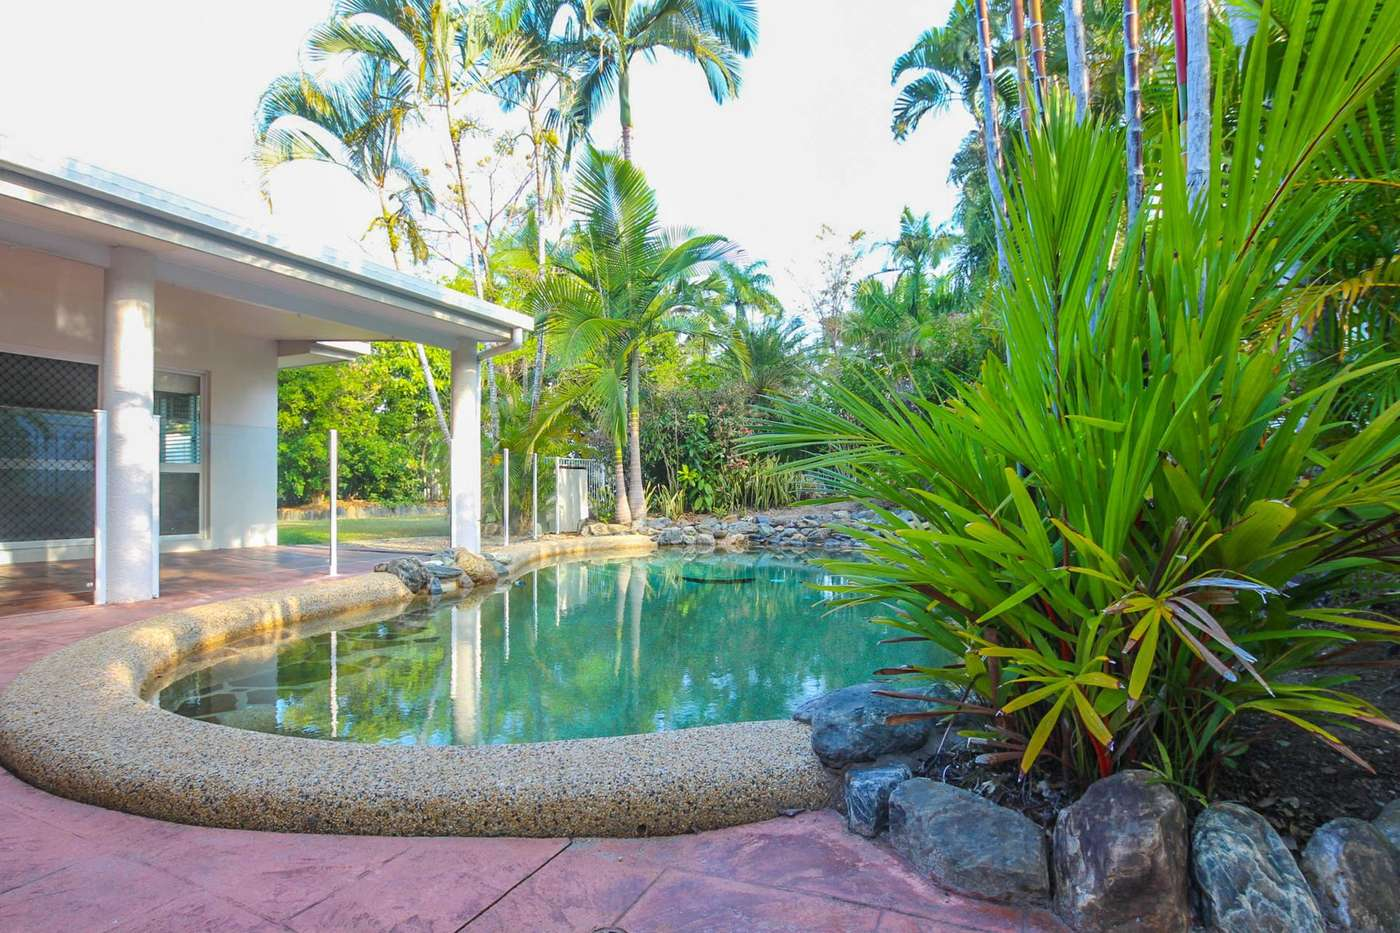 Main view of Homely house listing, 15 Stream Avenue, Paradise Palms, Kewarra Beach, QLD 4879